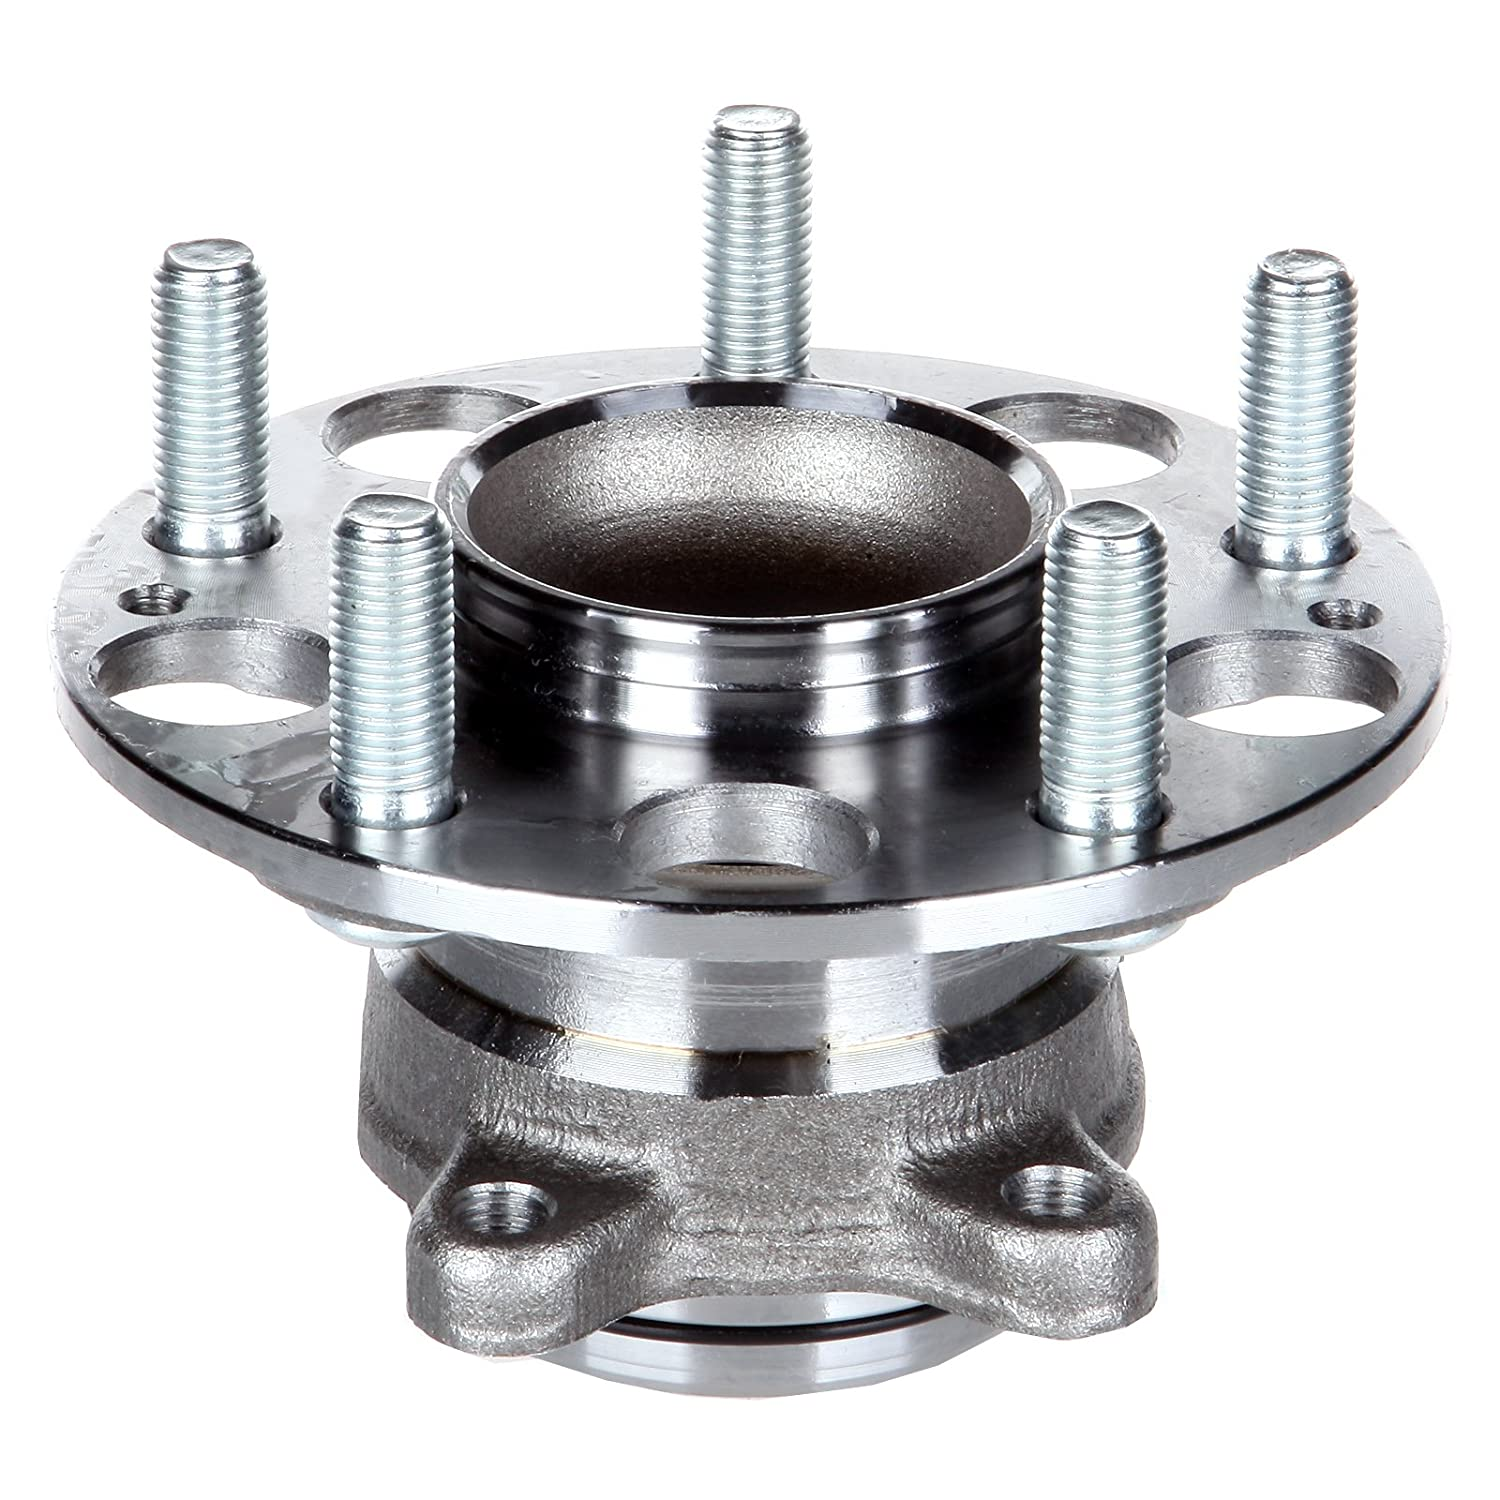 1 cciyu 512256 Wheel Hub and Bearing Assembly Replacement for fit Acura CSX 2006-2009 Honda Civic 2006-2009 Wheel Hubs 5 lugs 065940-5210-1050176221